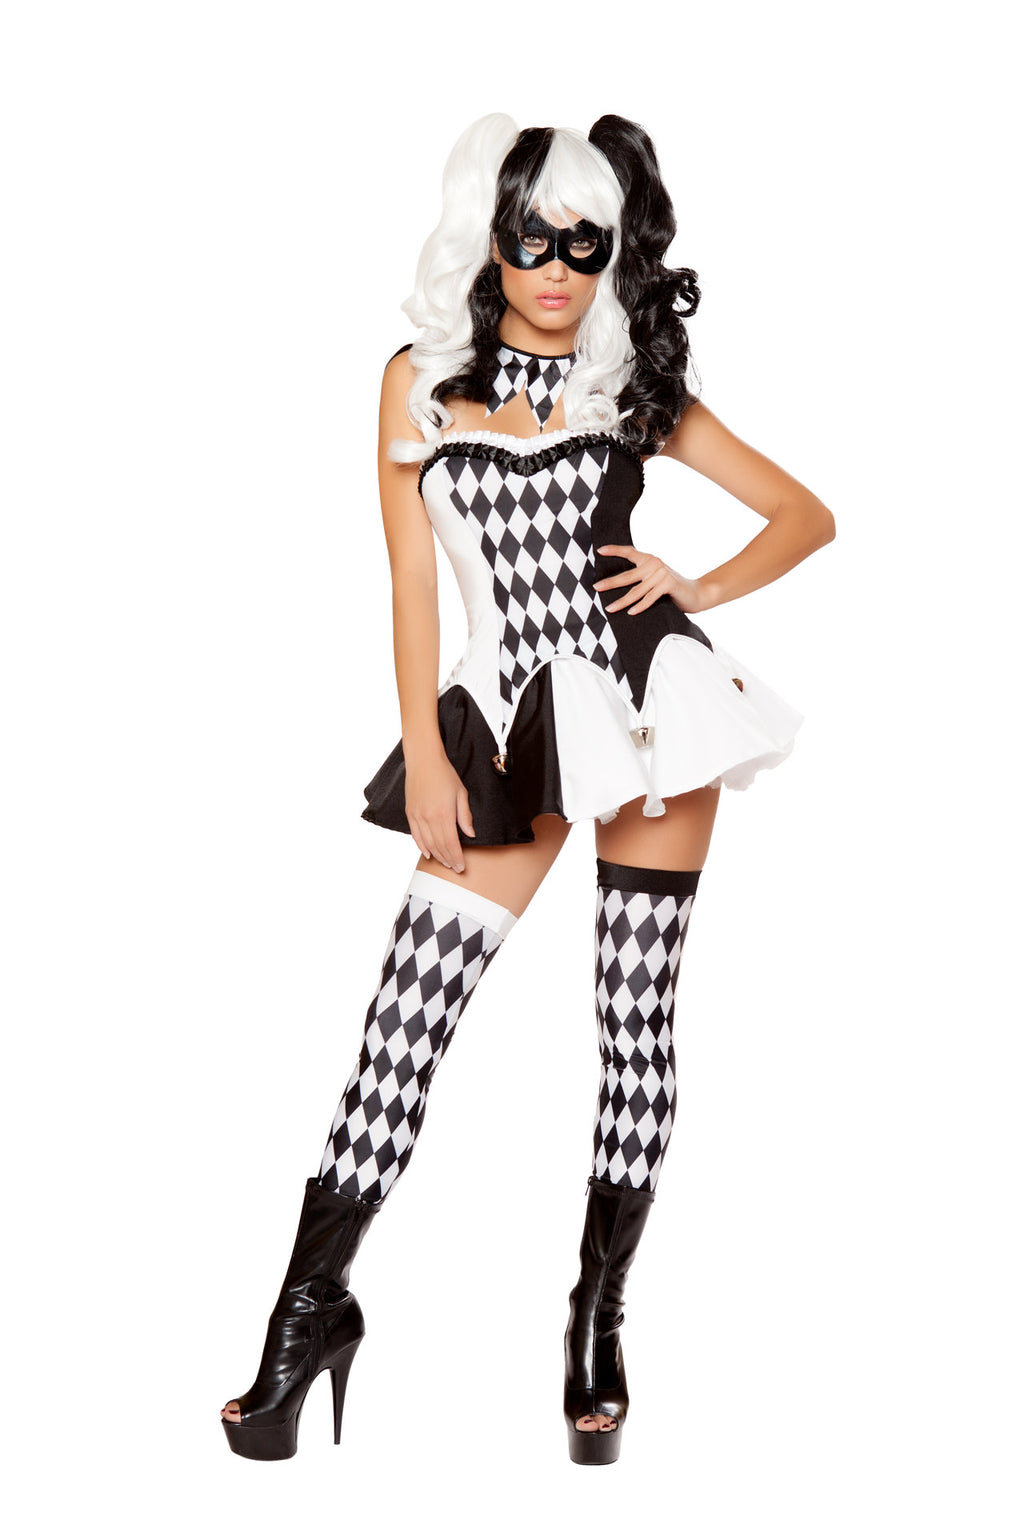 4-PC-Court-Jester-Harlequin-Black-&-White-Top-and-Skirt-w/-Neckpiece-Costume